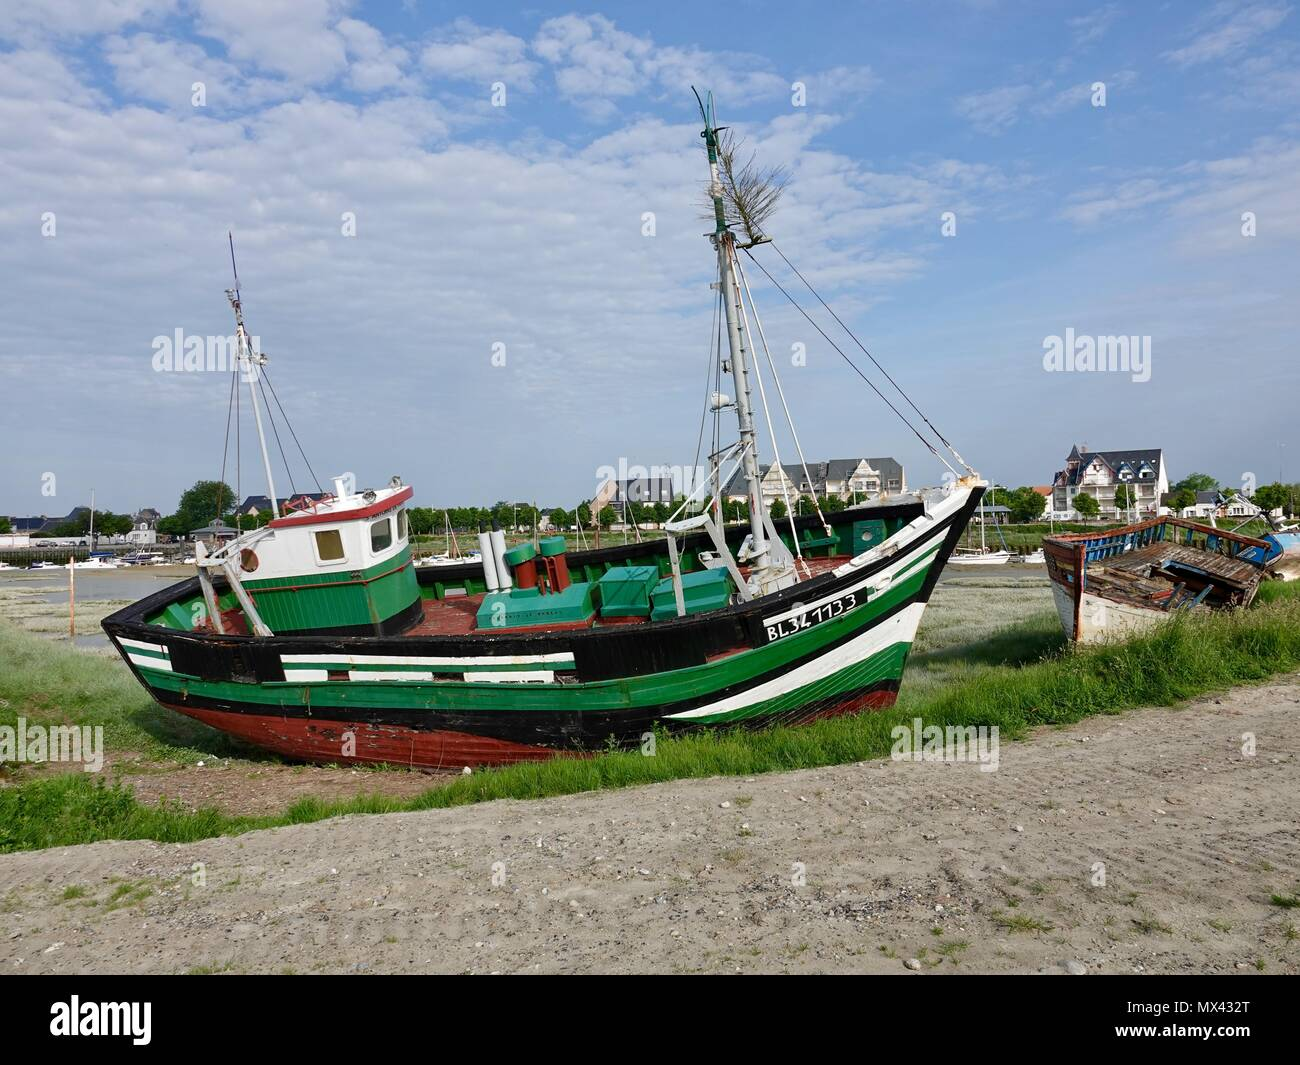 boat-on-shore-le-crotoy-france-MX432T.jp